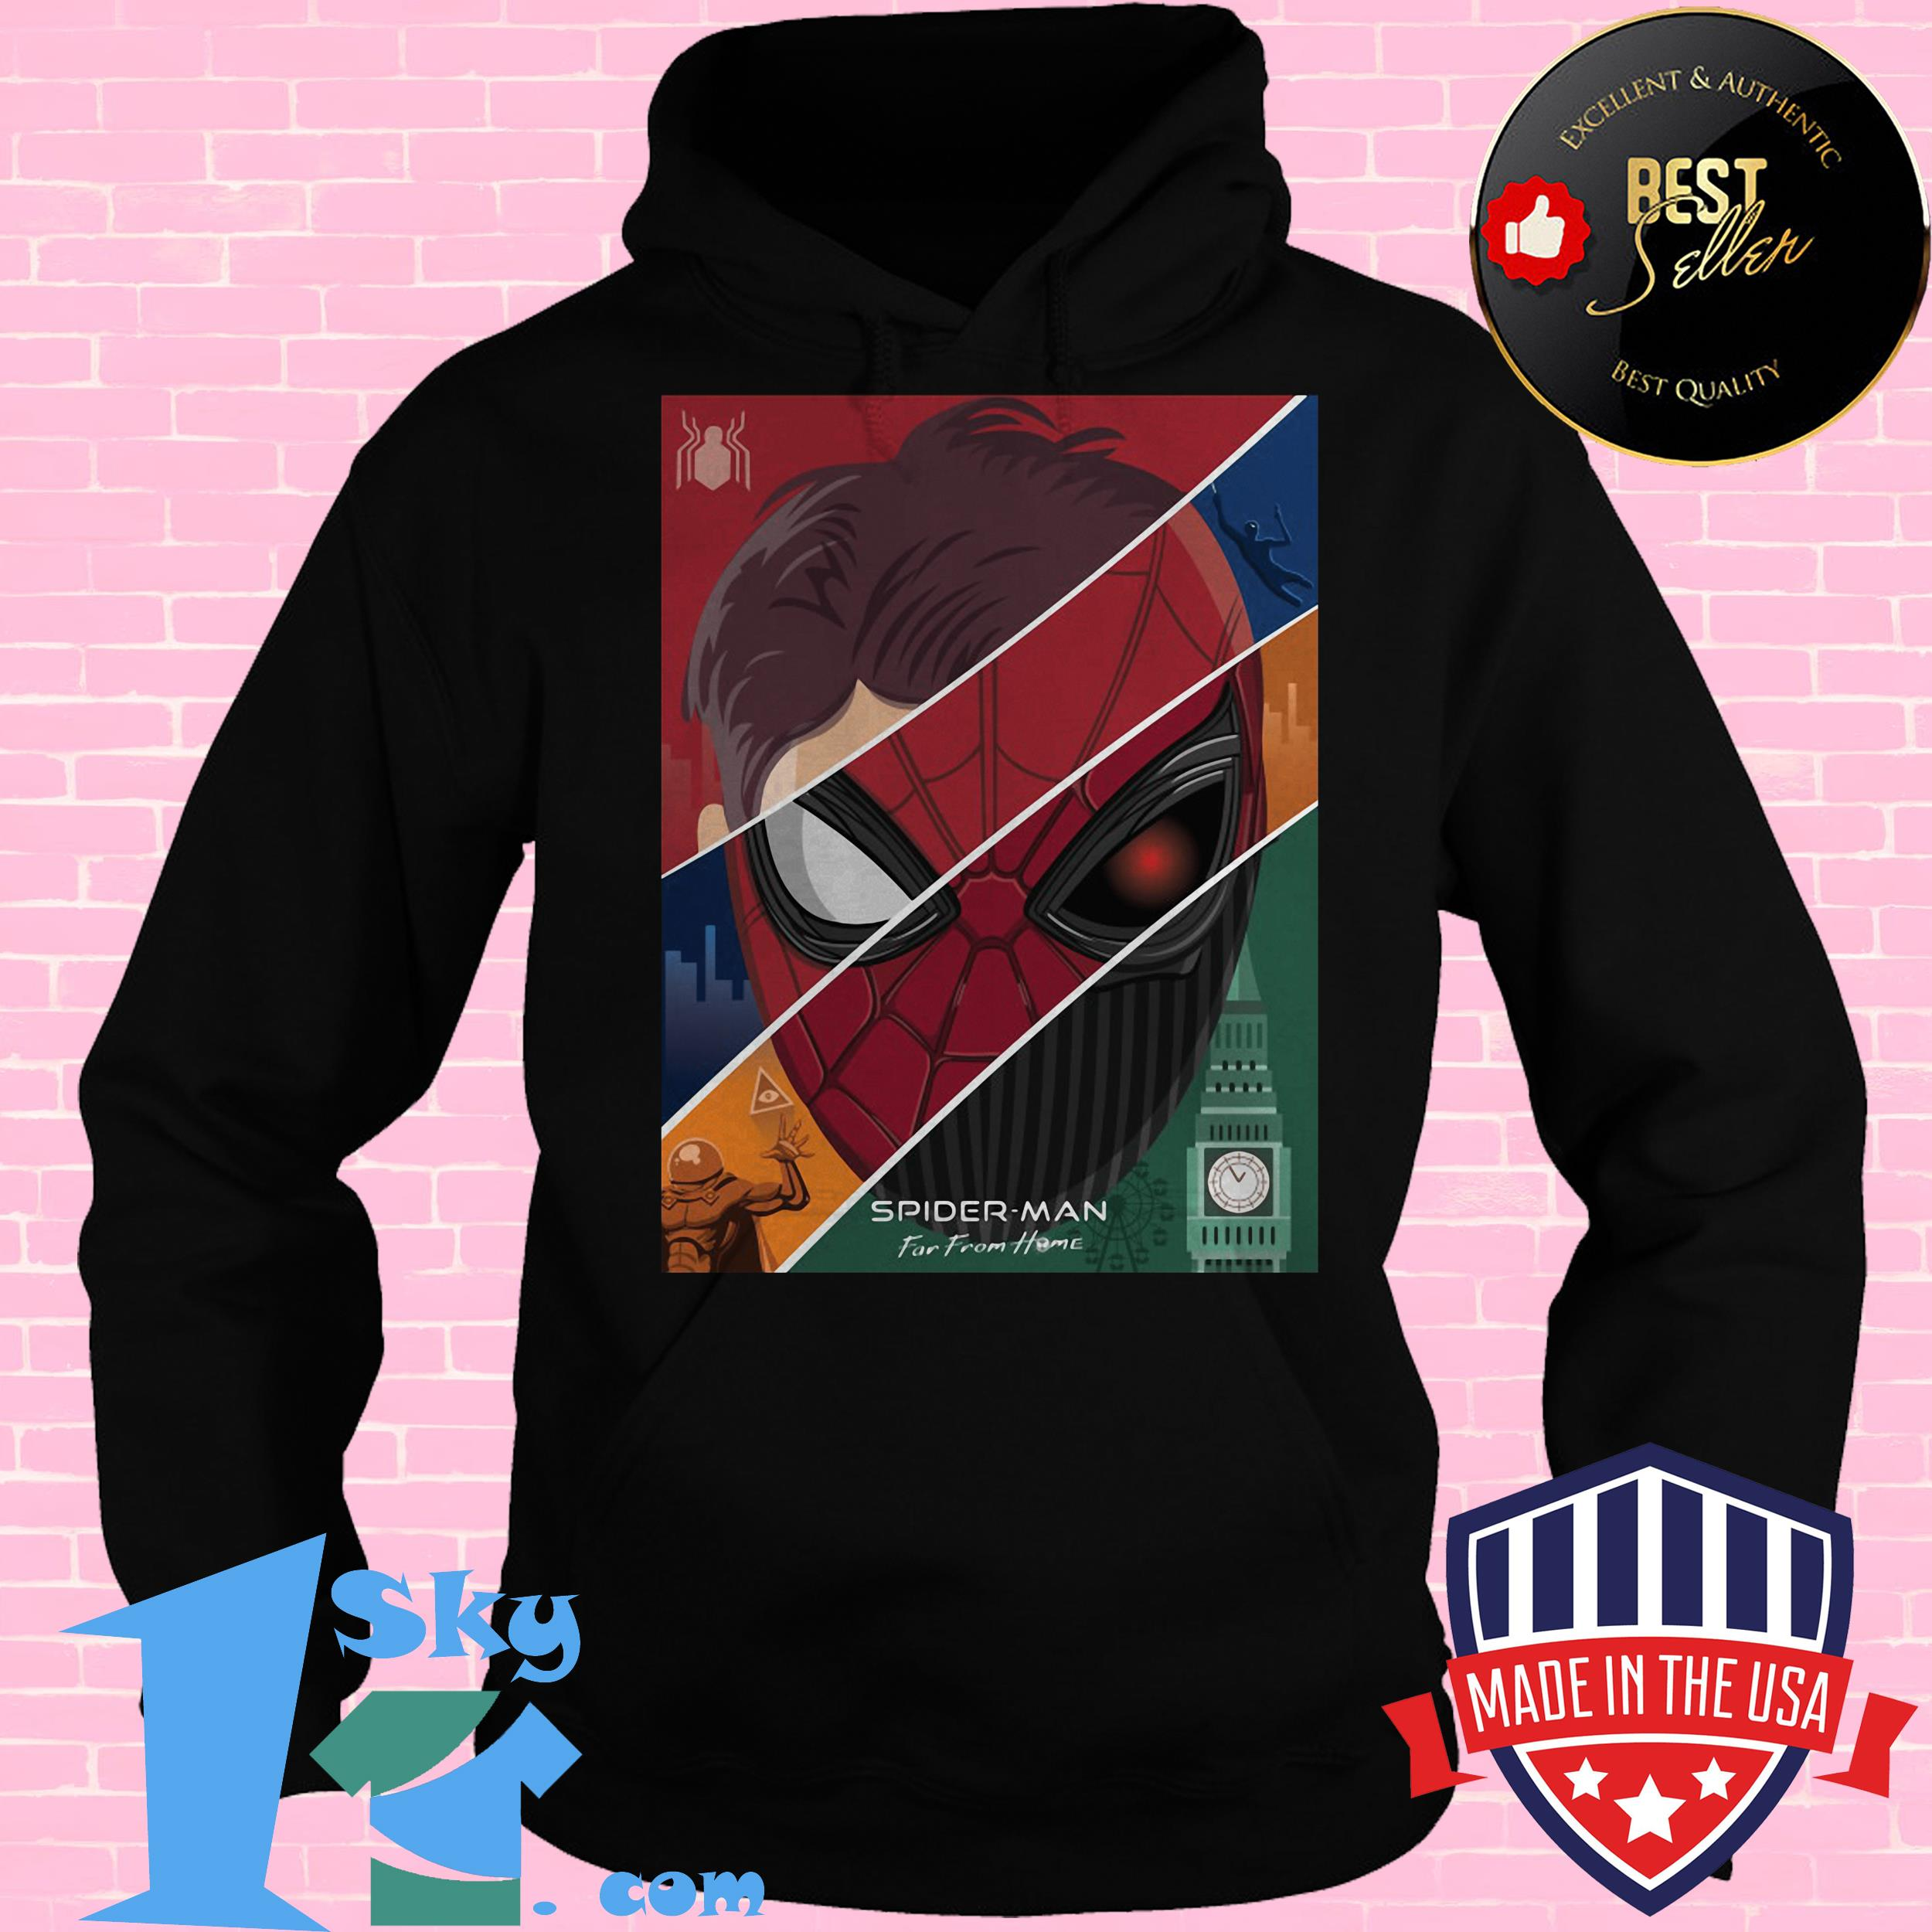 marvel spider man far from home hoodie - Marvel Spider-Man Far From Home shirt